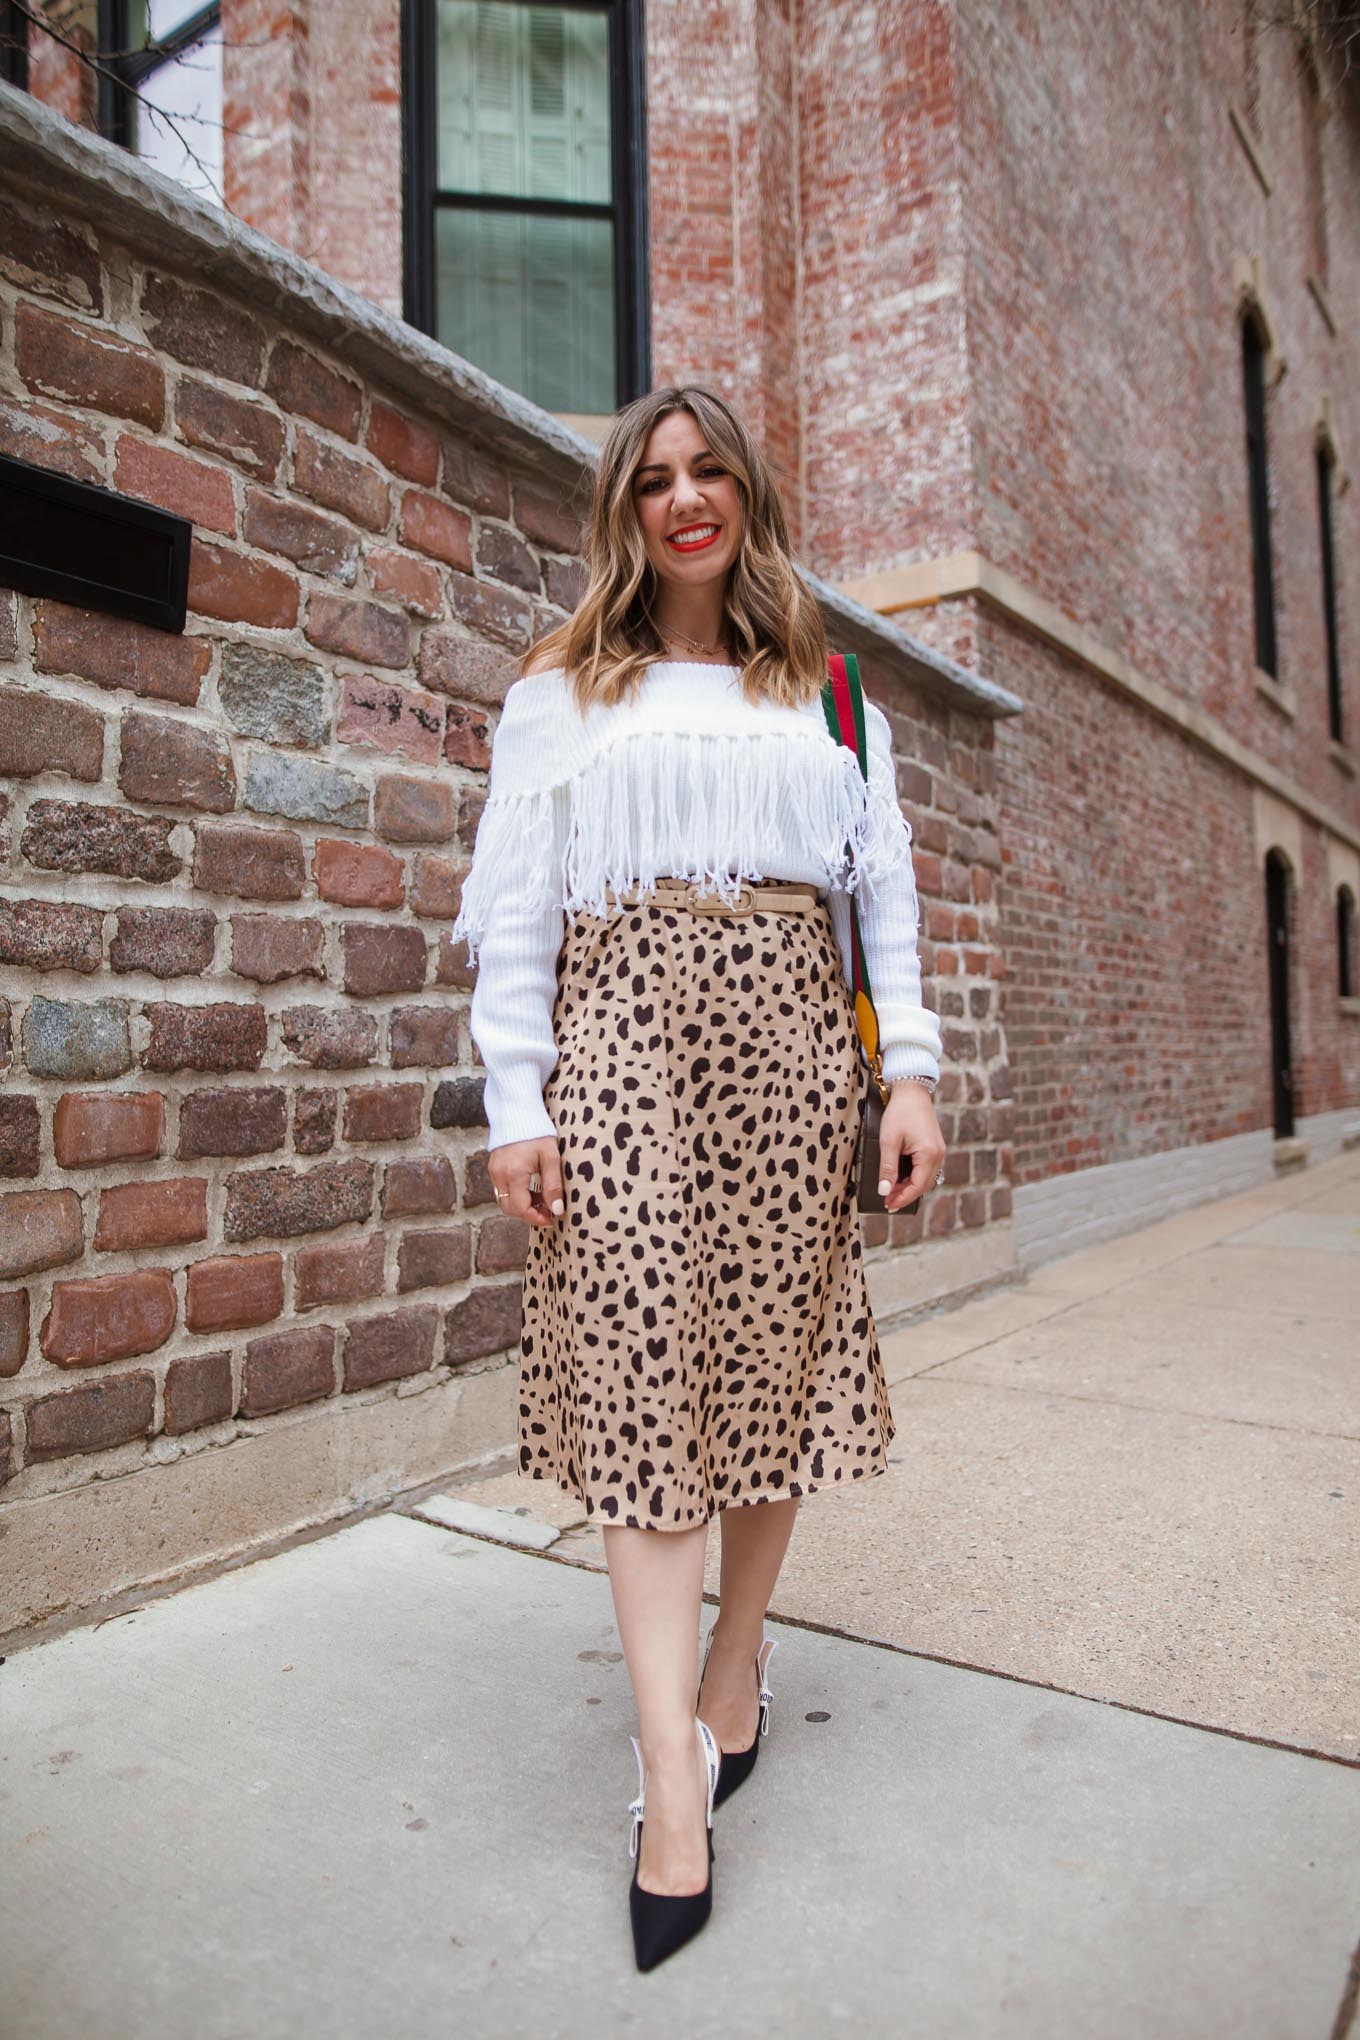 $30 Amazon Leopard Skirt by popular Chicago blog, Glass of Glam: image of a woman standing outside by a brick building and wearing a Amazon Ru Sweet Women's Off Shoulder Long Sleeve Slim Fit Fringe Knit Crop Top Sweater, Amazon Keasmto Leopard Midi Skirt Plus Size for Women, Dior J'ADIOR PUMP IN TECHNICAL CANVAS, Gucci Neo Vintage GG Supreme messenger bag, and Target Revlon Super Lustrous The Luscious Mattes Lipstick.